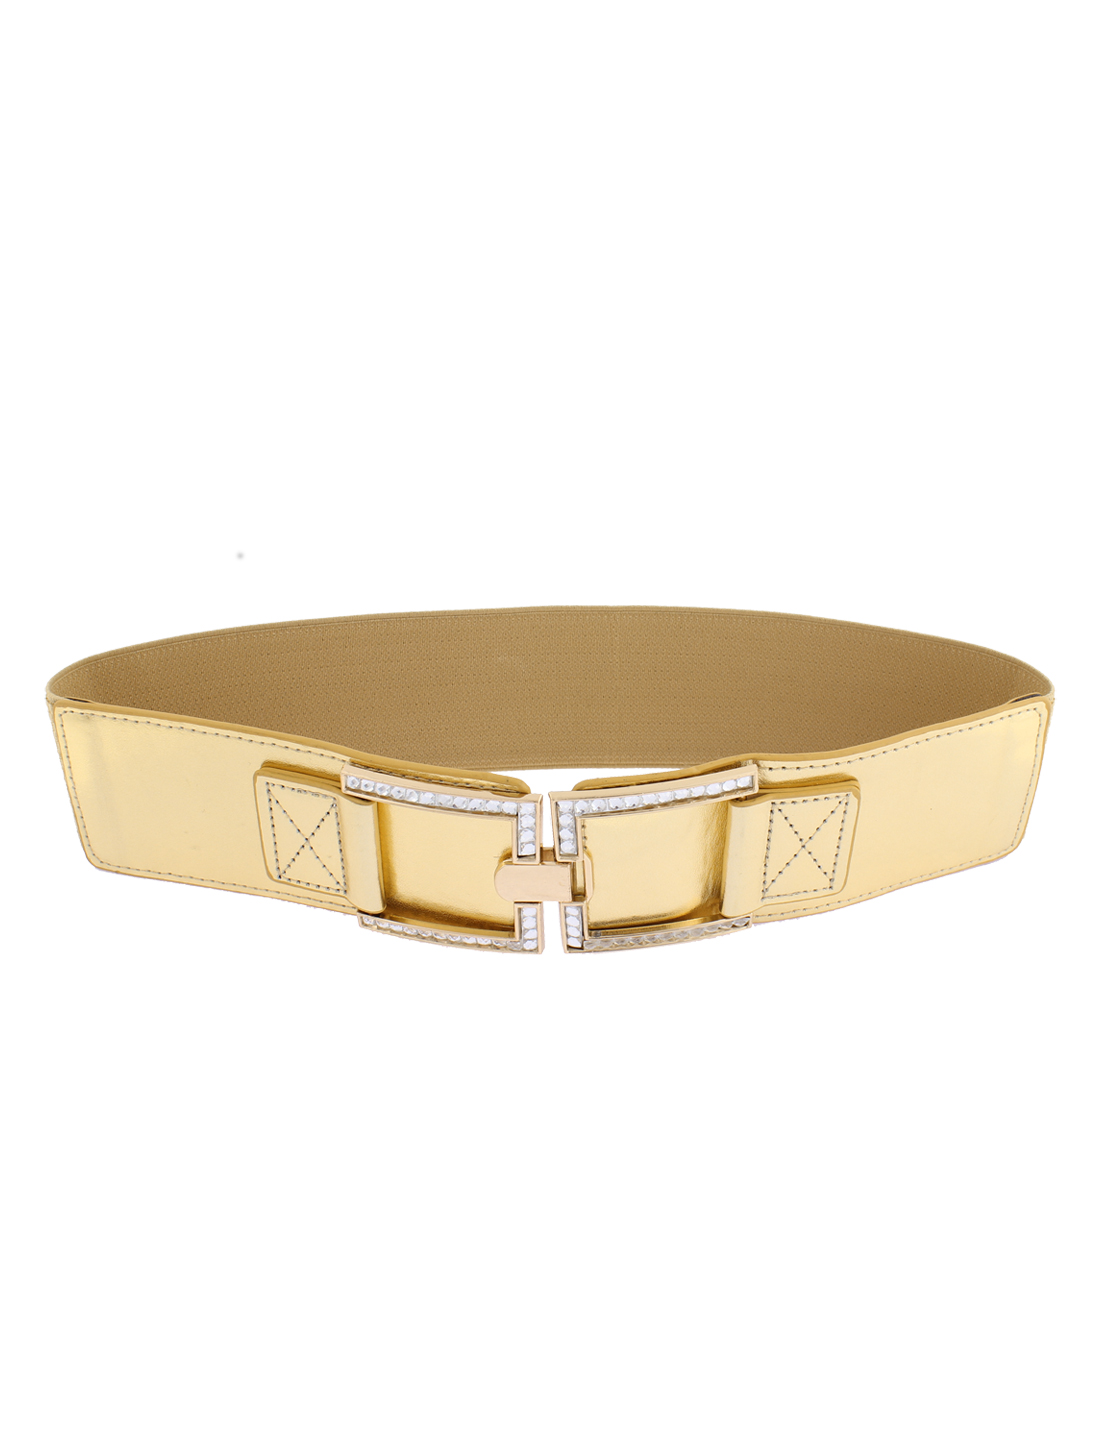 Adjustable Elastic Wide Waistband Waist Belt Gold Tone for Lady